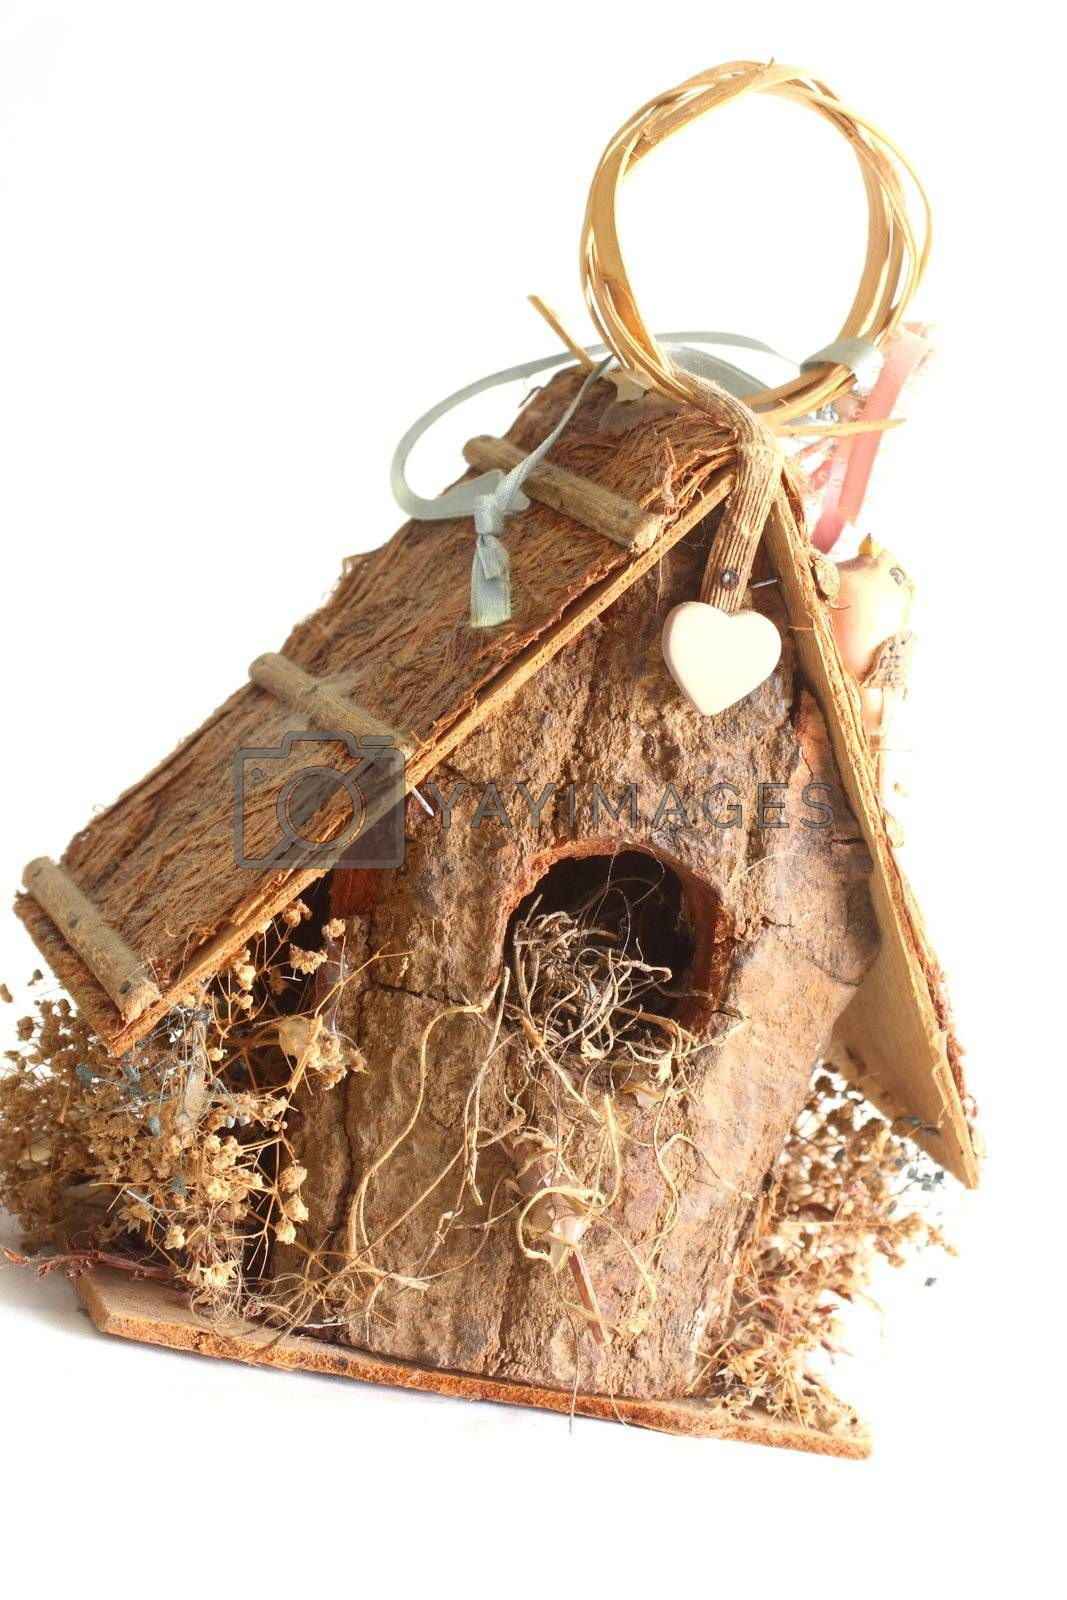 Wooden Birdhouse house decor on white